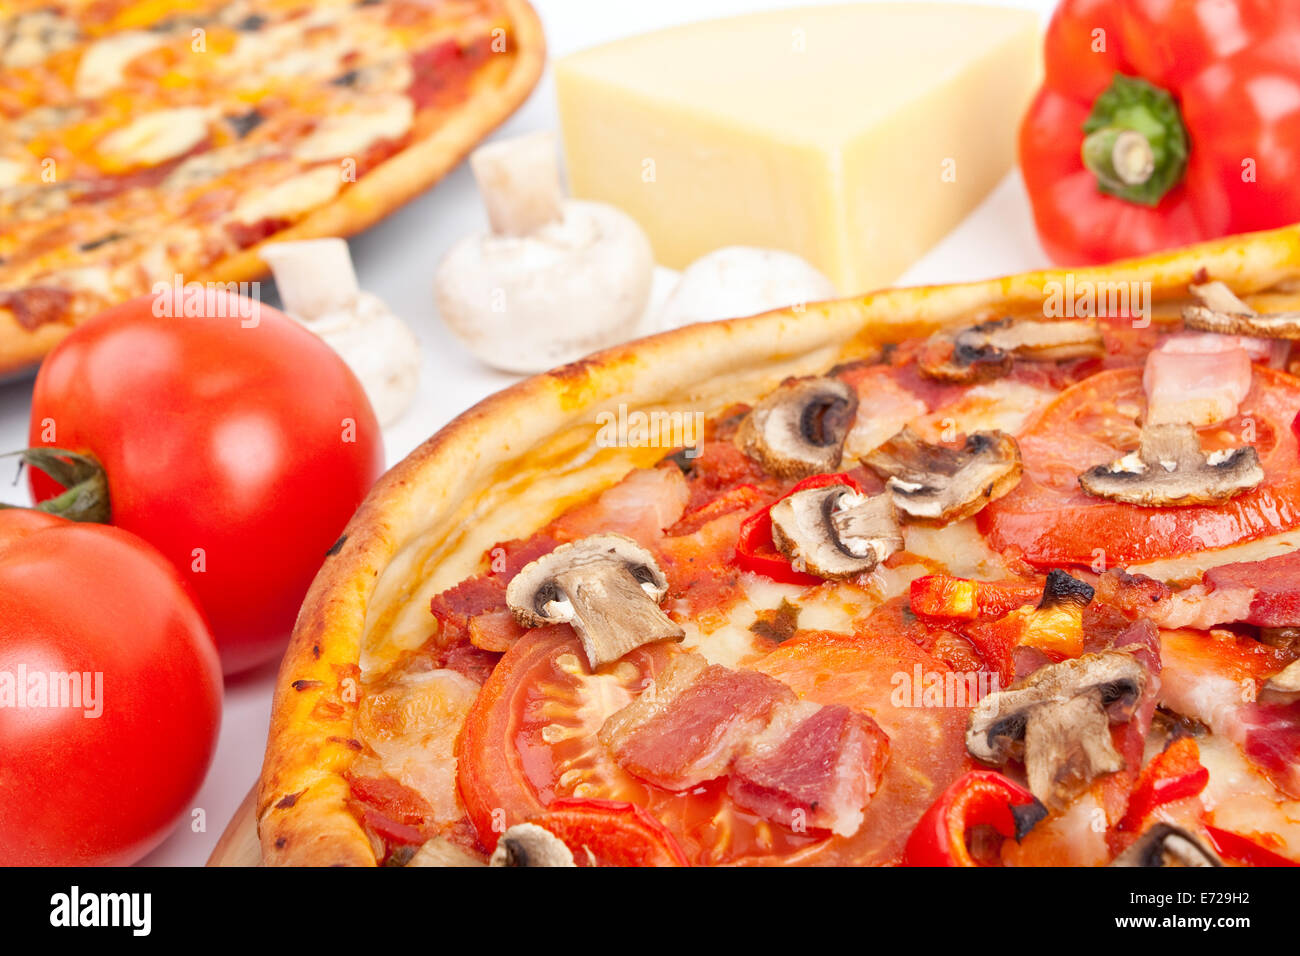 ham and mushroom pizza with ingredients - Stock Image